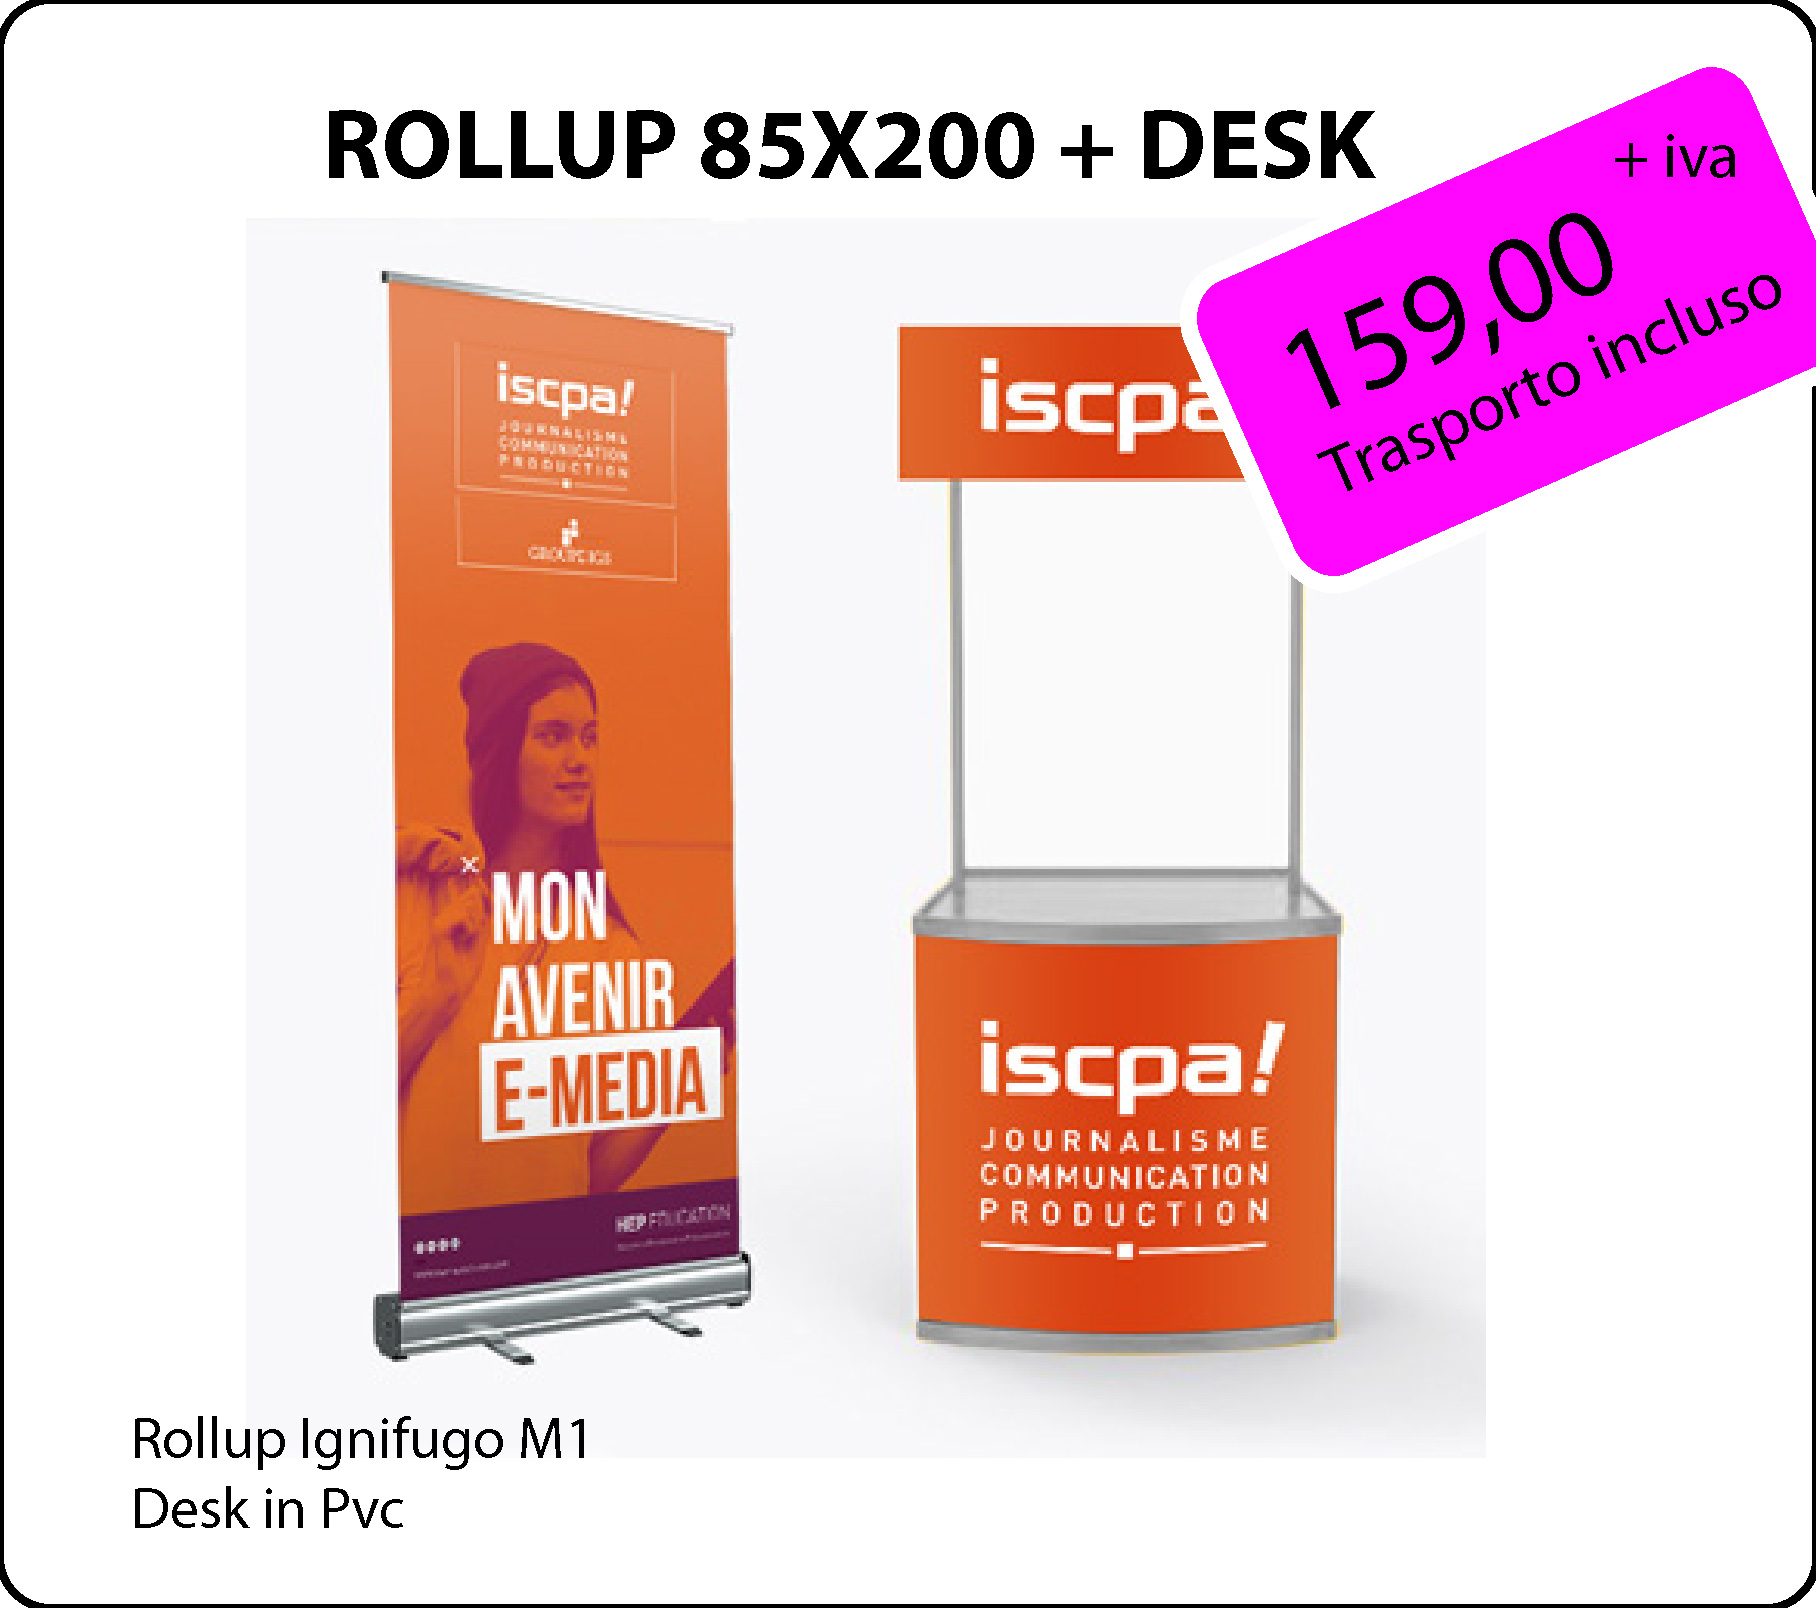 Pack 1 - Rollup + Desk pvc